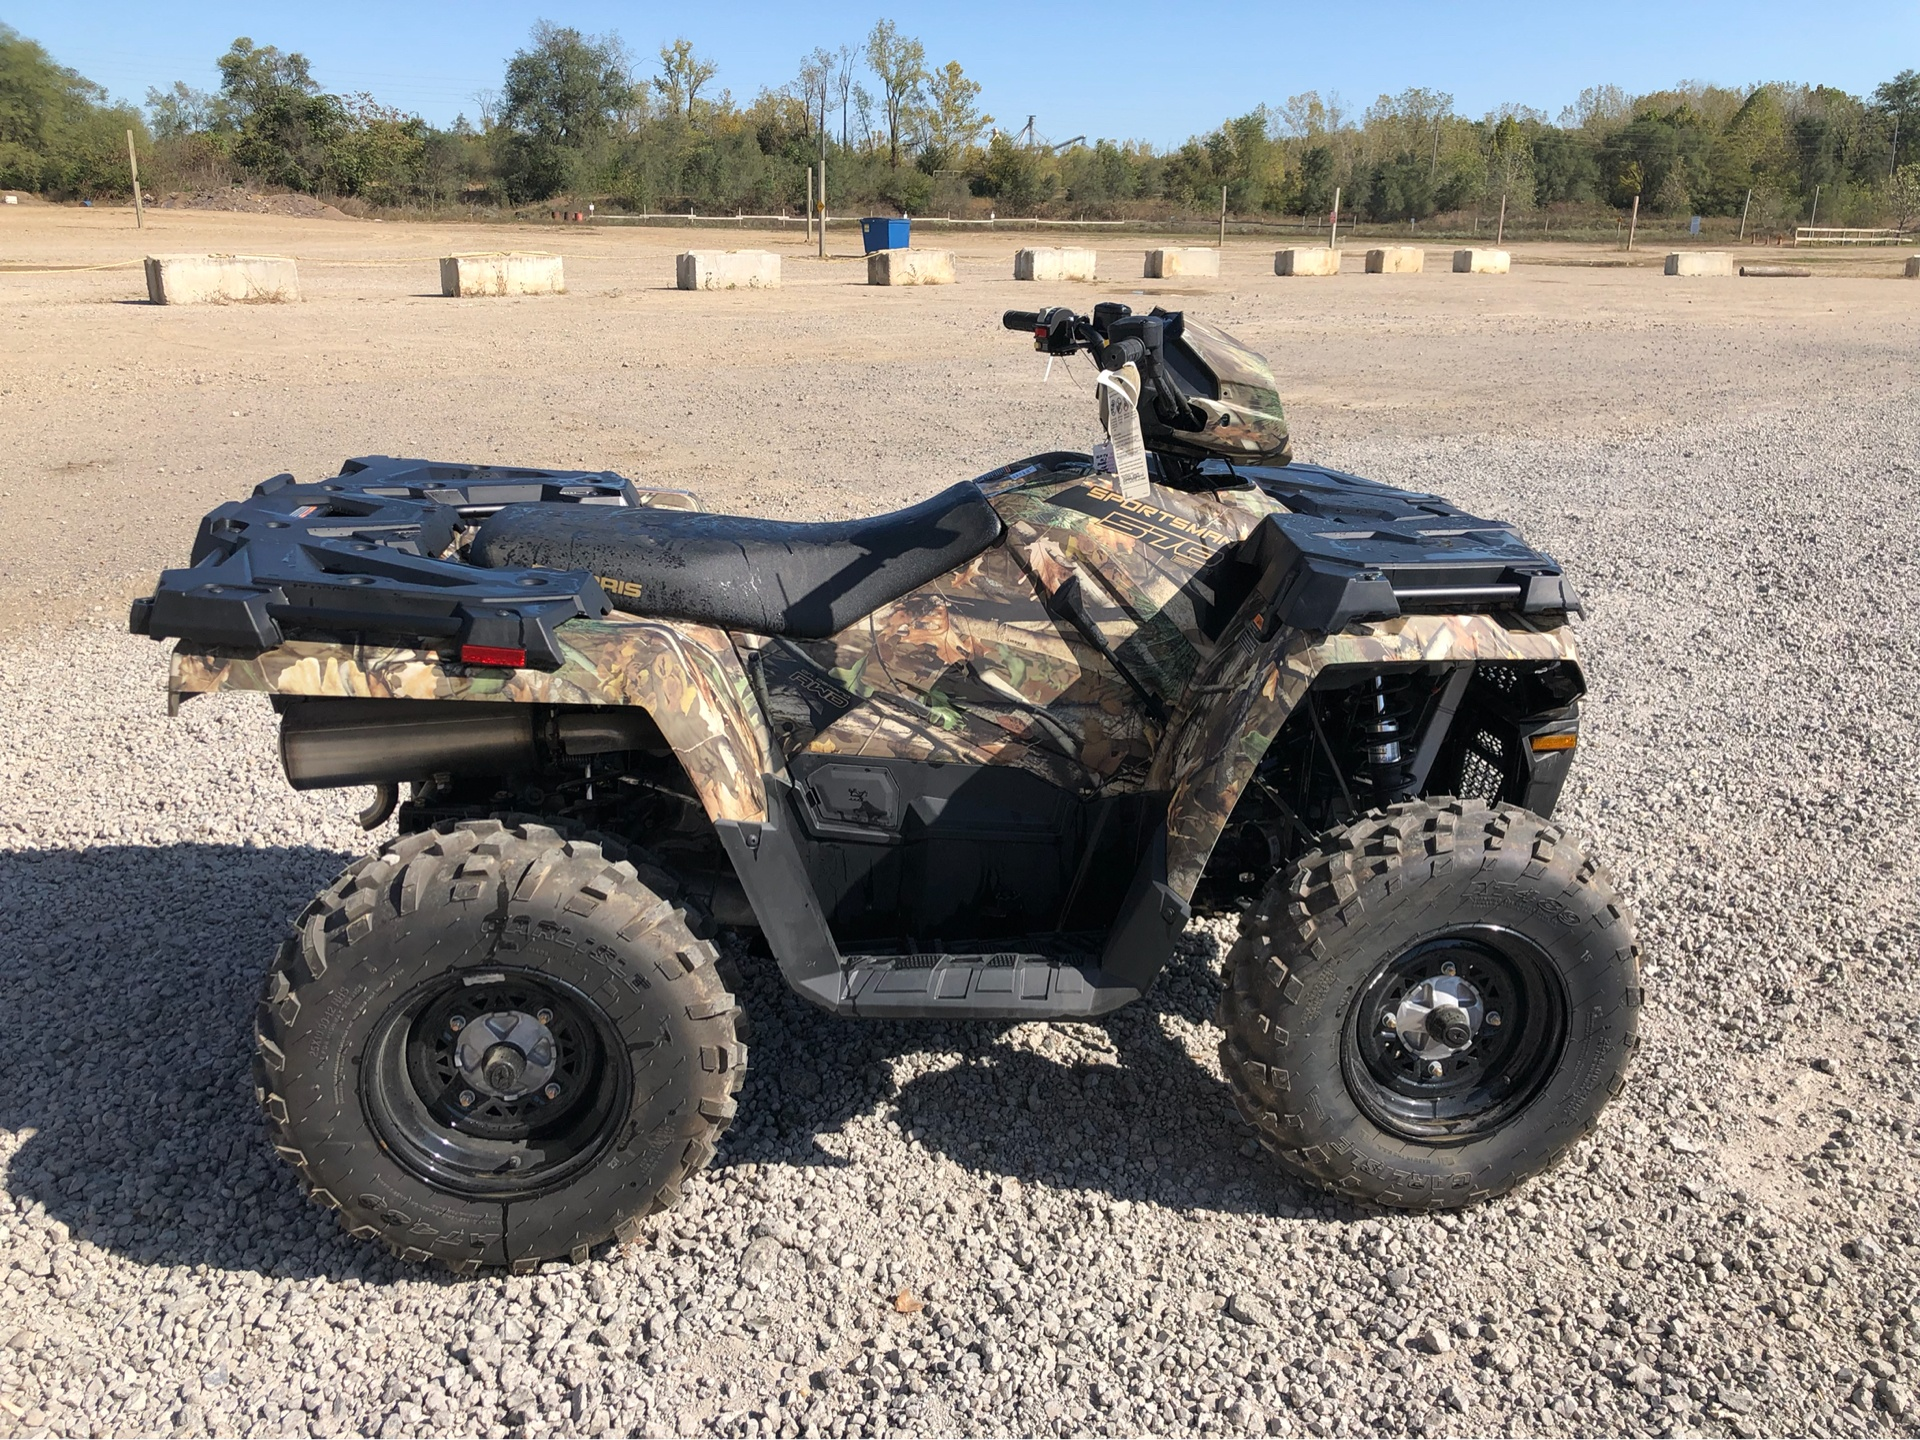 2019 Polaris Sportsman 570 EPS Camo in Attica, Indiana - Photo 5